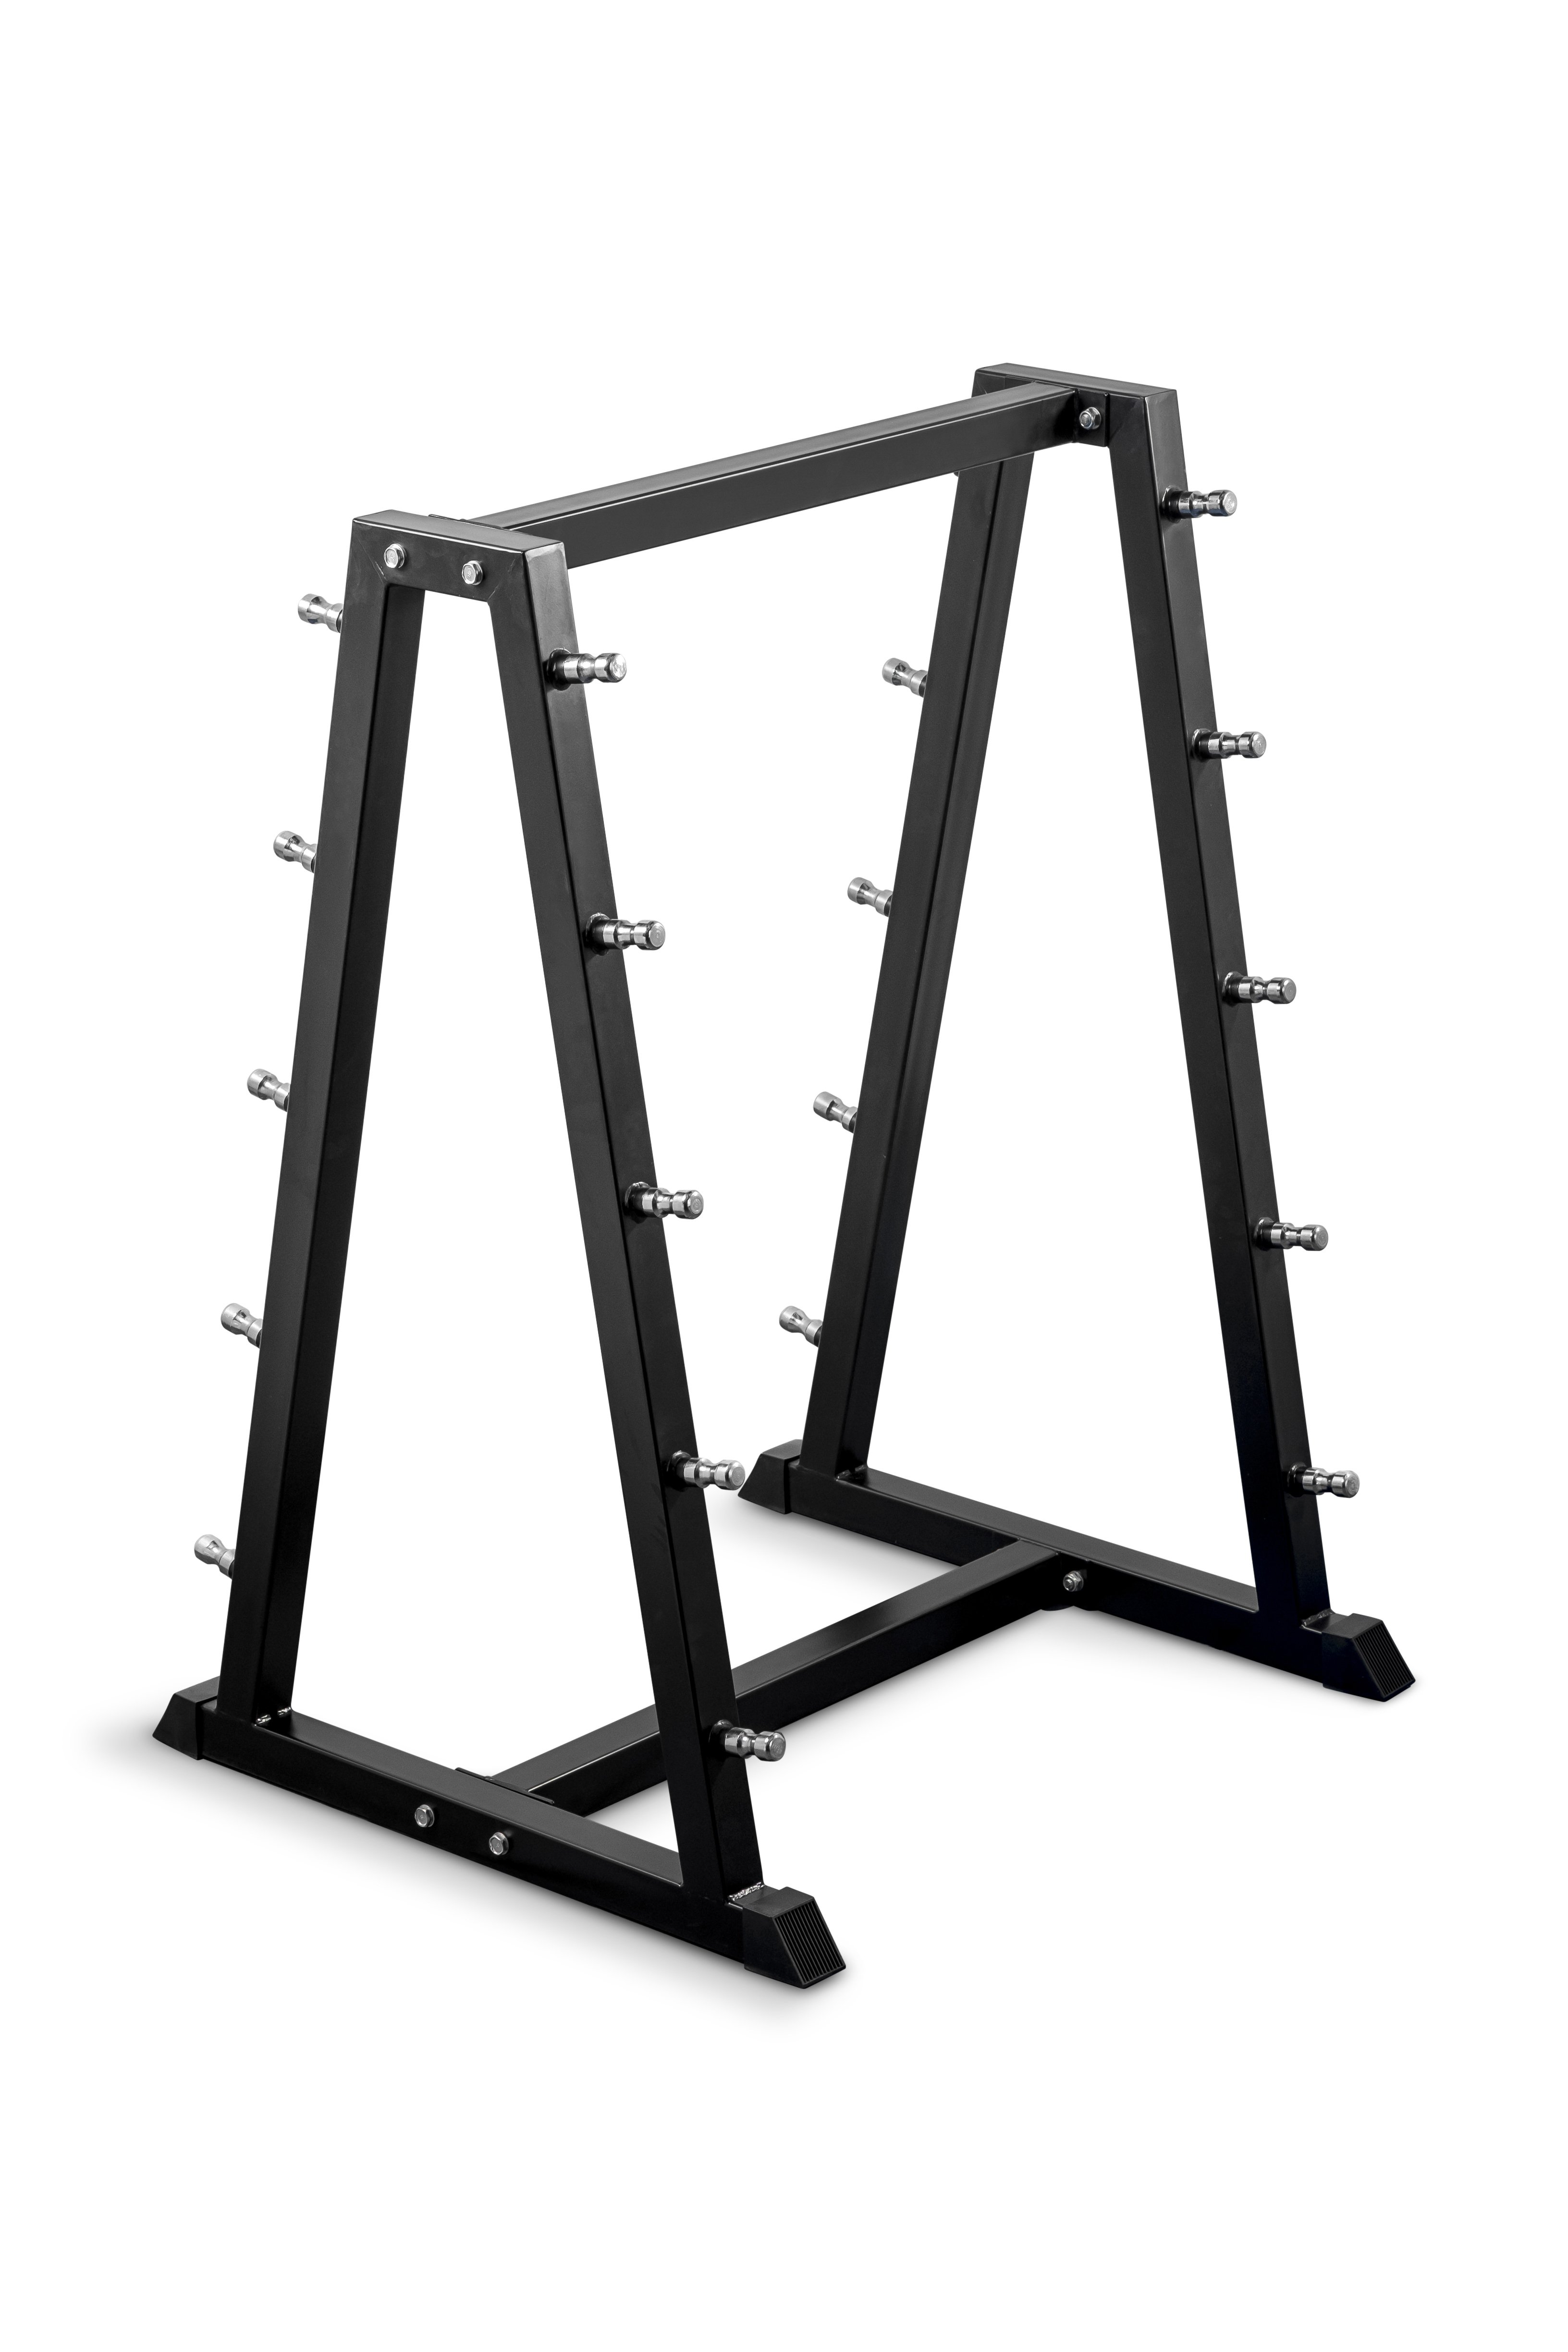 weight sized barbell holder p storage olympic size qlt weider with rack prod wid hei